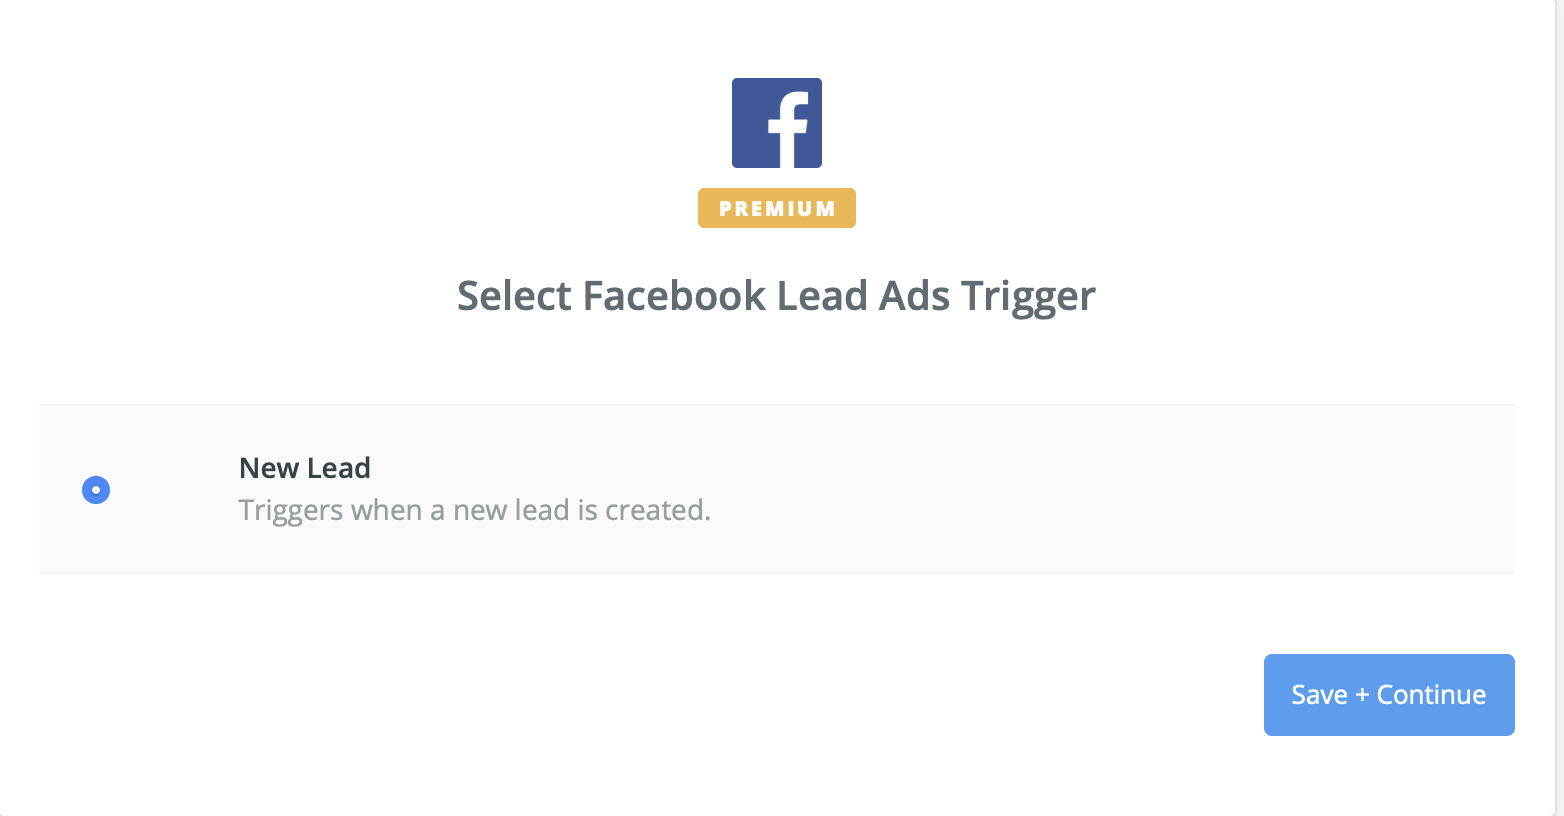 Zapier Trigger New Lead Ad